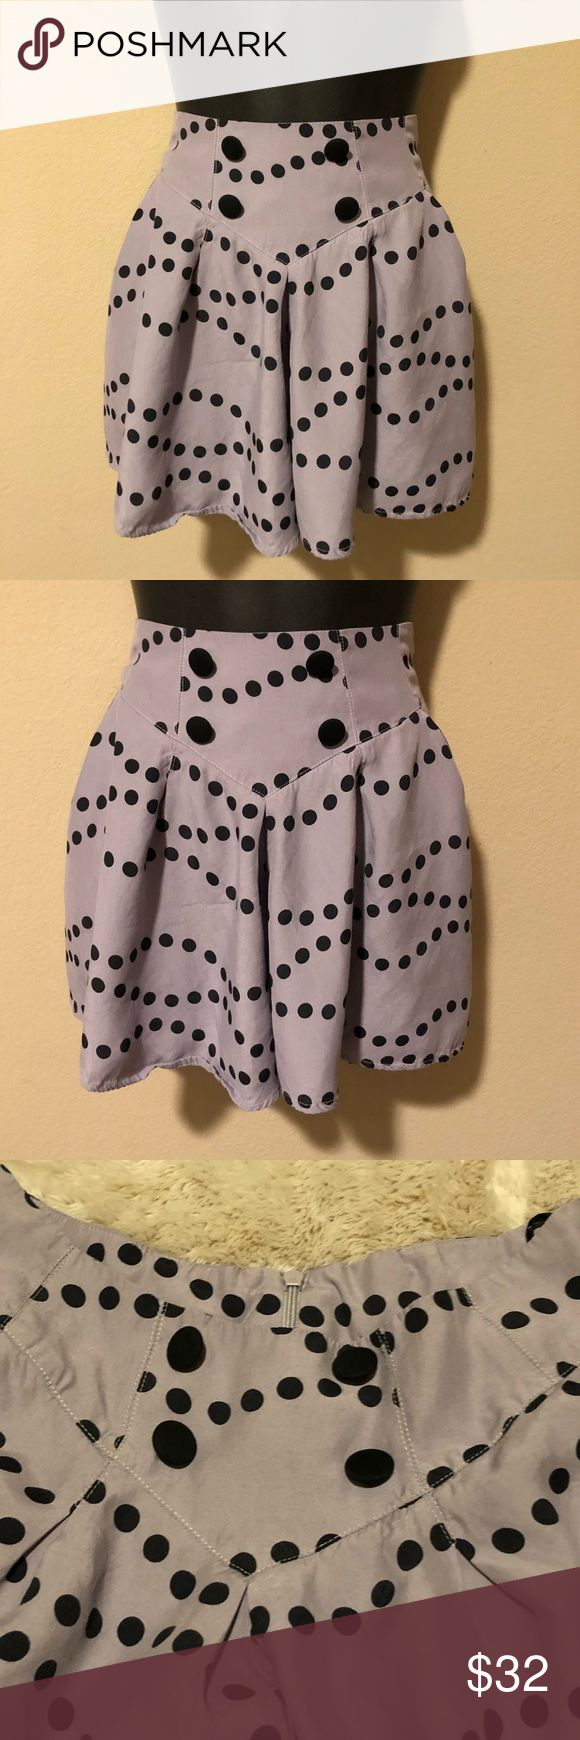 Women's TopShop High Waist Purple Polkadot Shorts Super cute high waist black button polka dot shorts from TopShop, women's size 6 in perfect condition, zip up back. Super flowy and and almost skirt like! Topshop Shorts Skorts